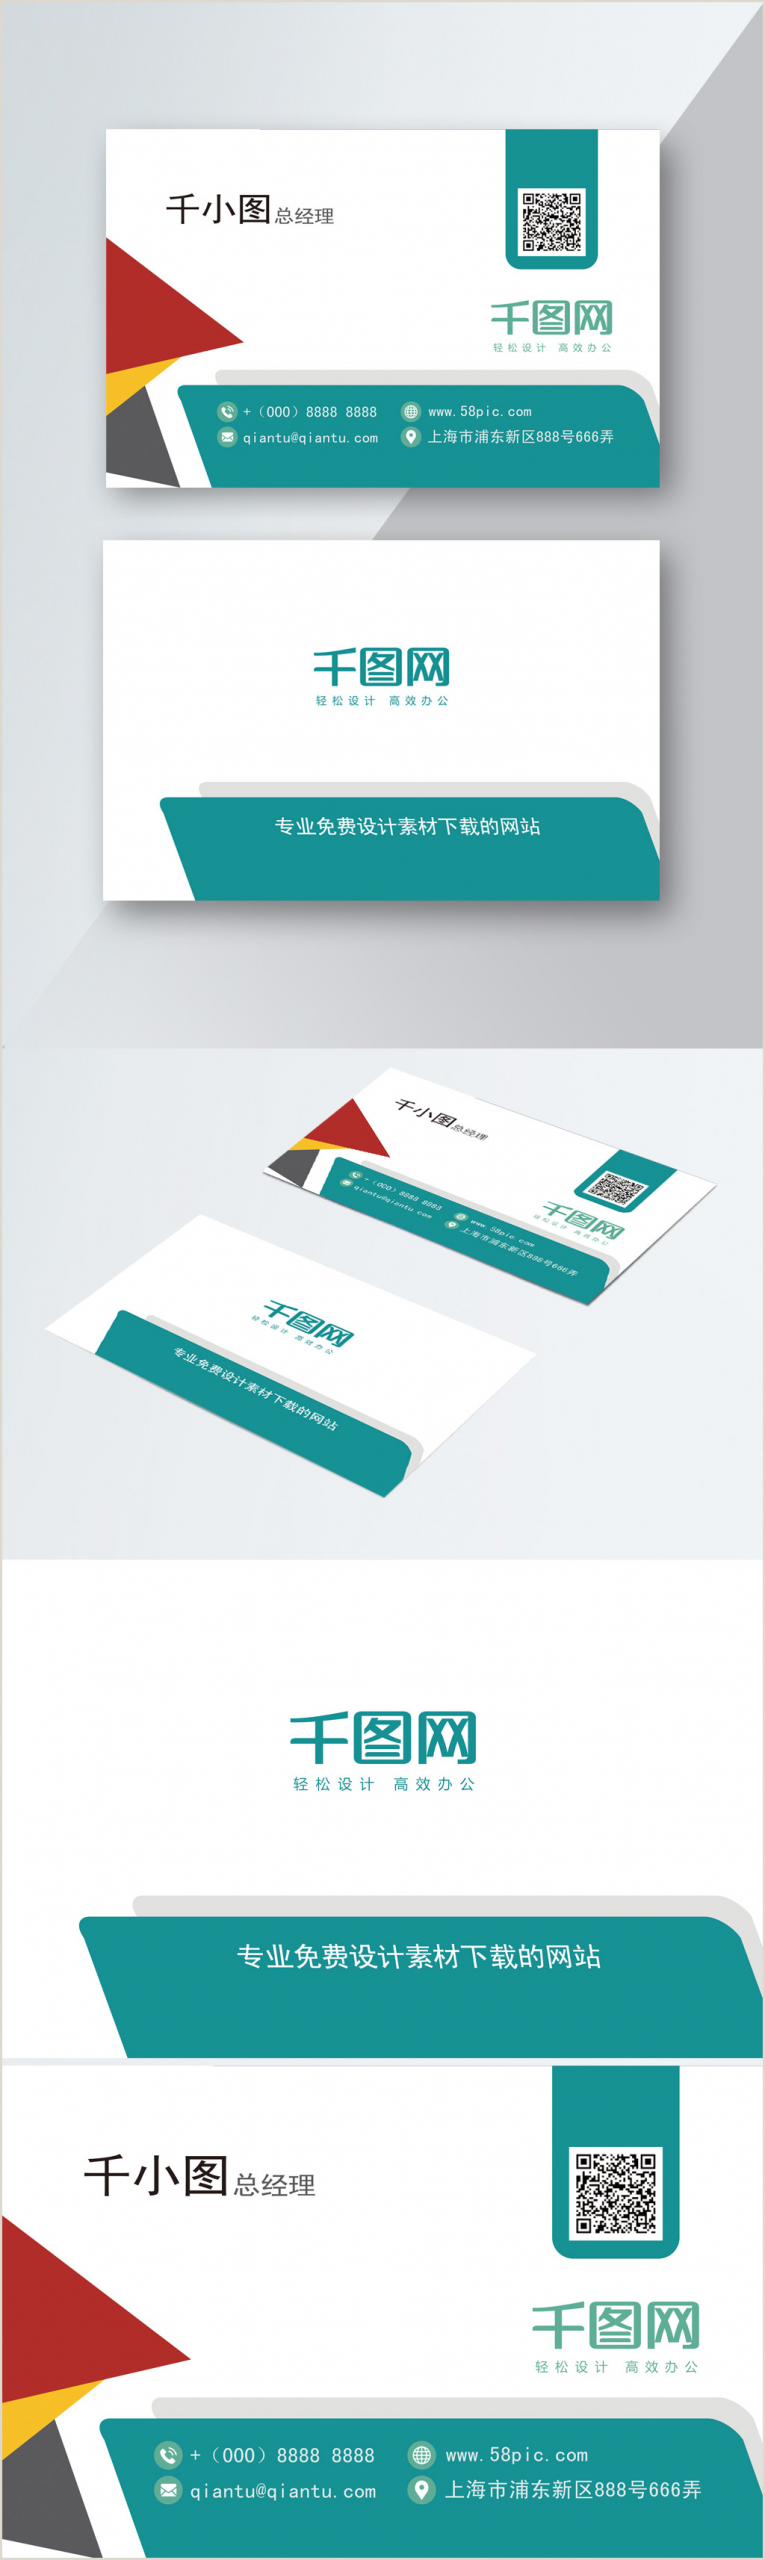 Referral Business Cards Unique Unique Business Card Template Image Picture Free